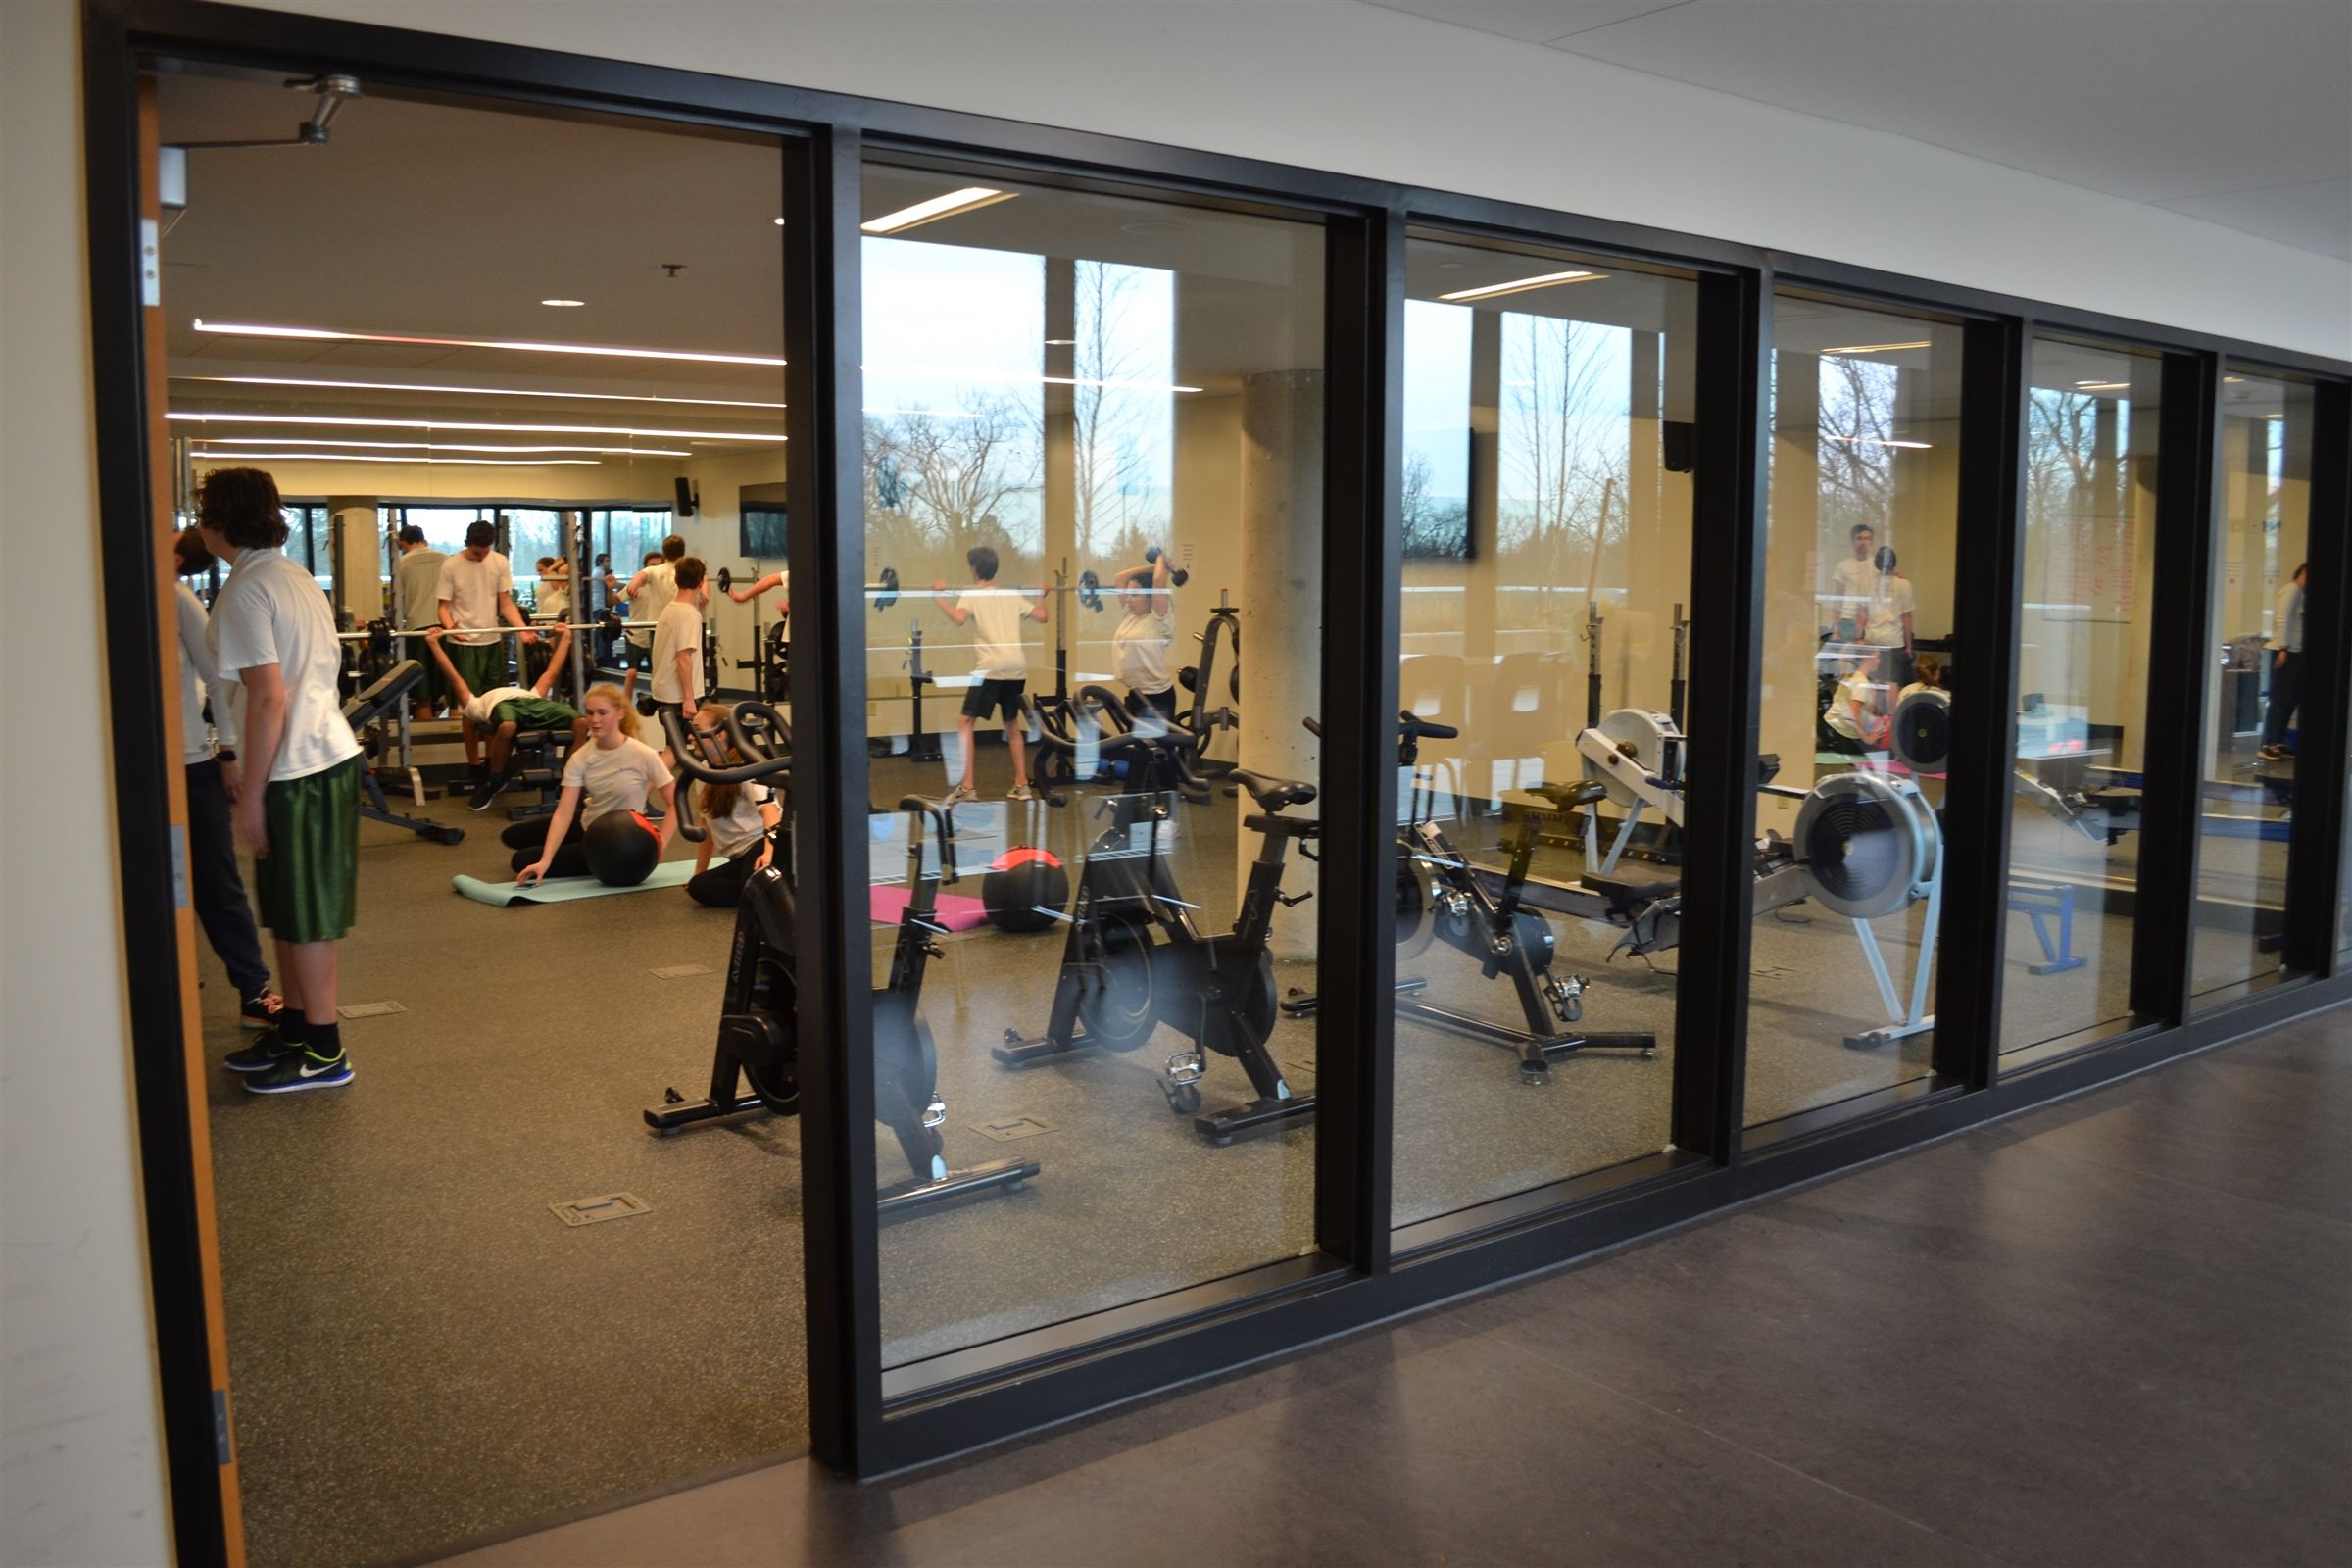 Greenwood's fitness room encourages students and staff to make physical well-being a priority. This facility introduces students to the equipment and core movements that will enable them to put together effective workouts anywhere in the world.